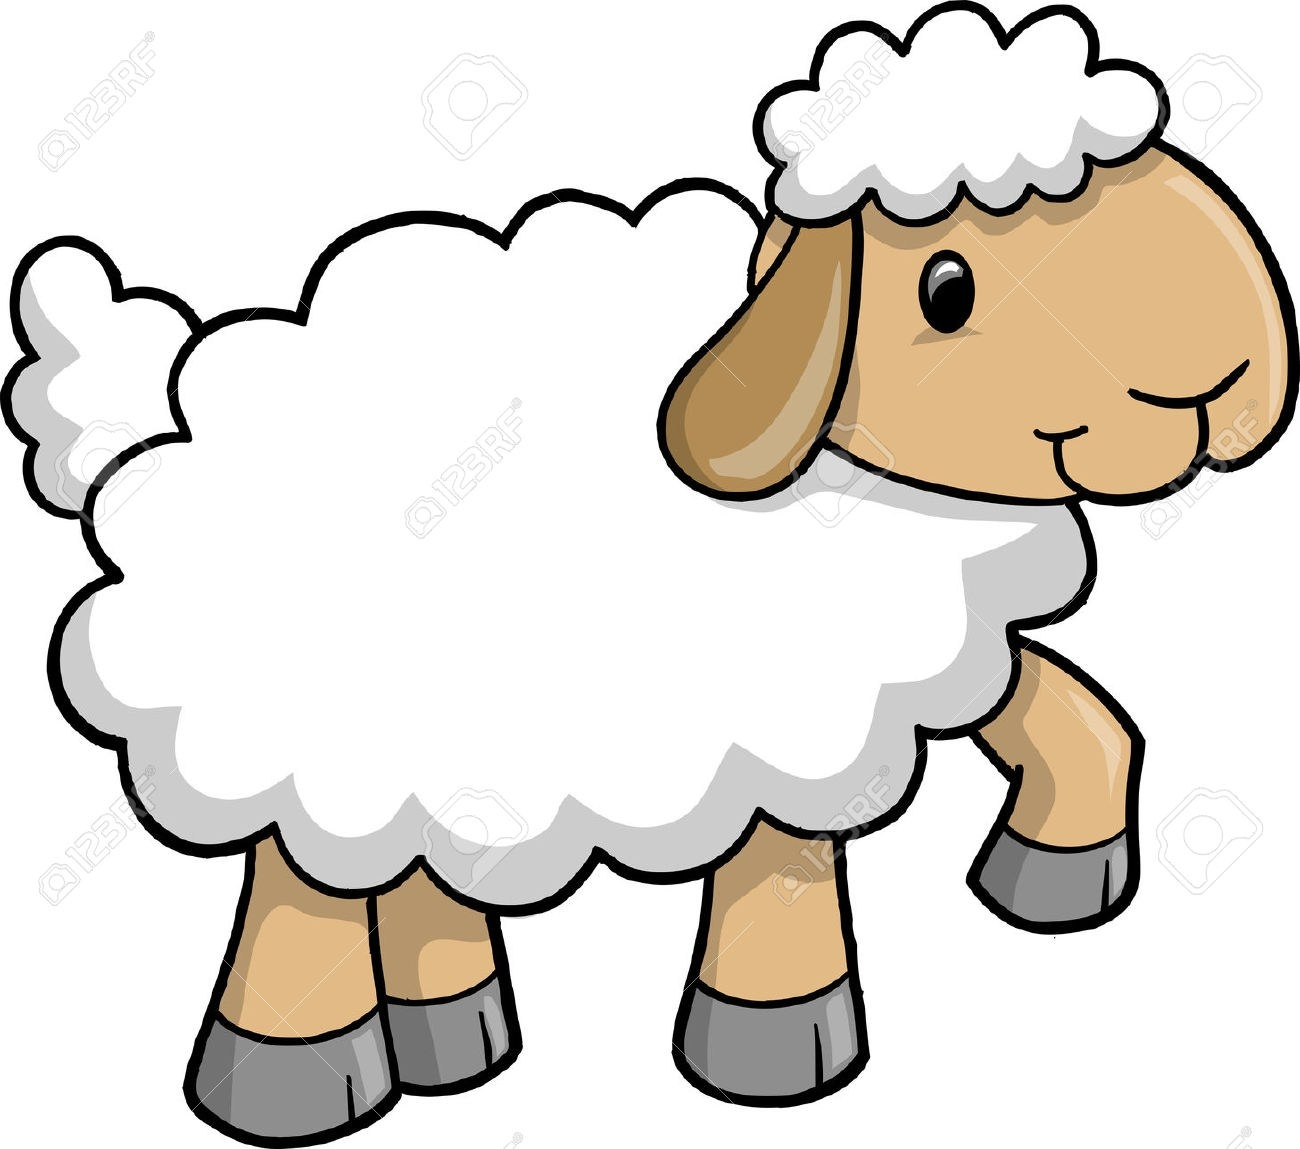 cartoon sheep clipart at getdrawings com free for personal use rh getdrawings com sheep clipart outline sheep clip art images free